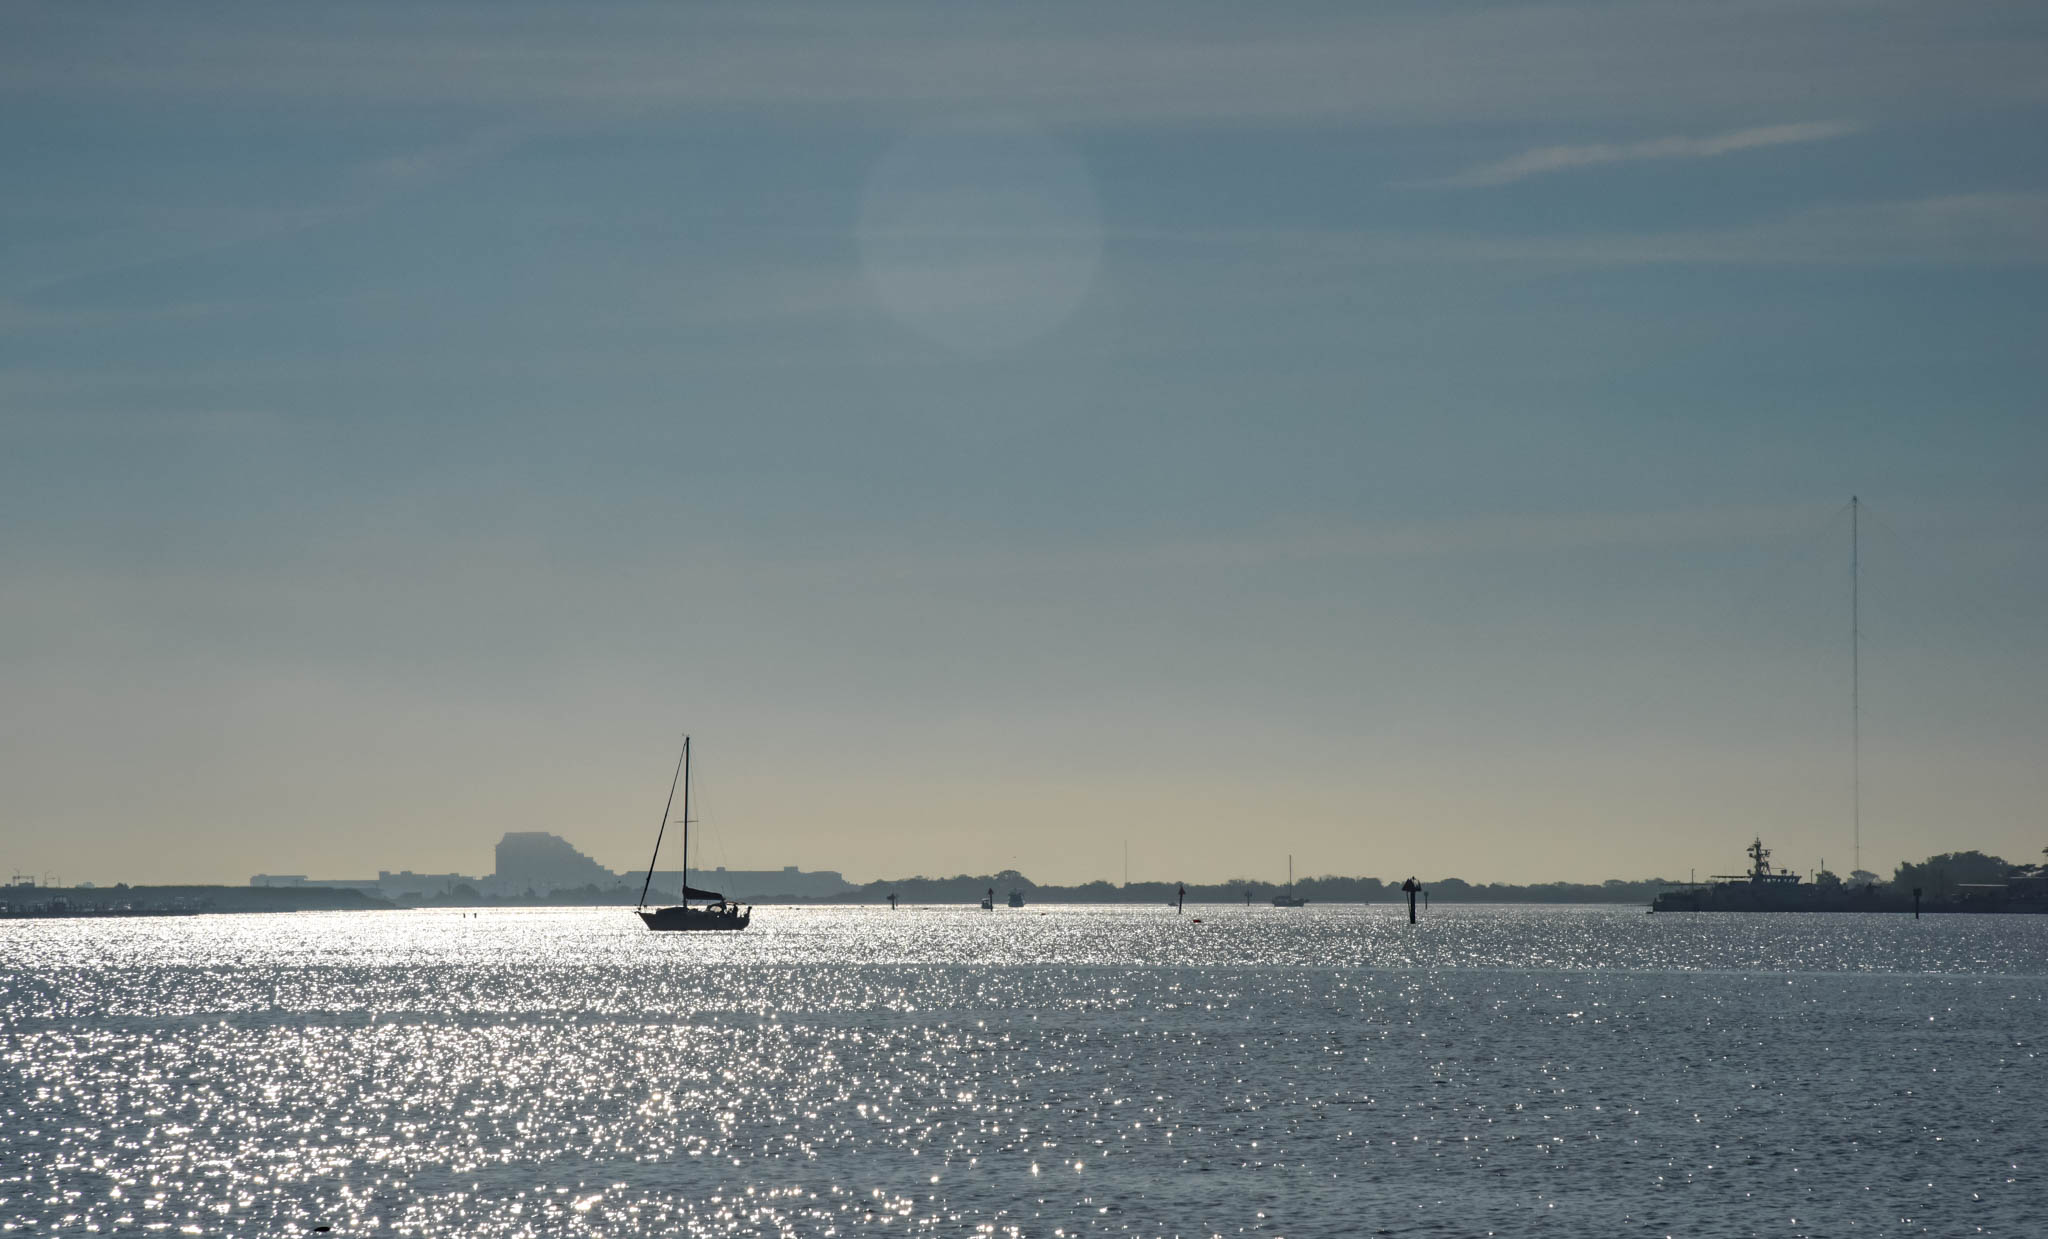 A sailboat sailing away in the Cape May Harbor in the early morning.